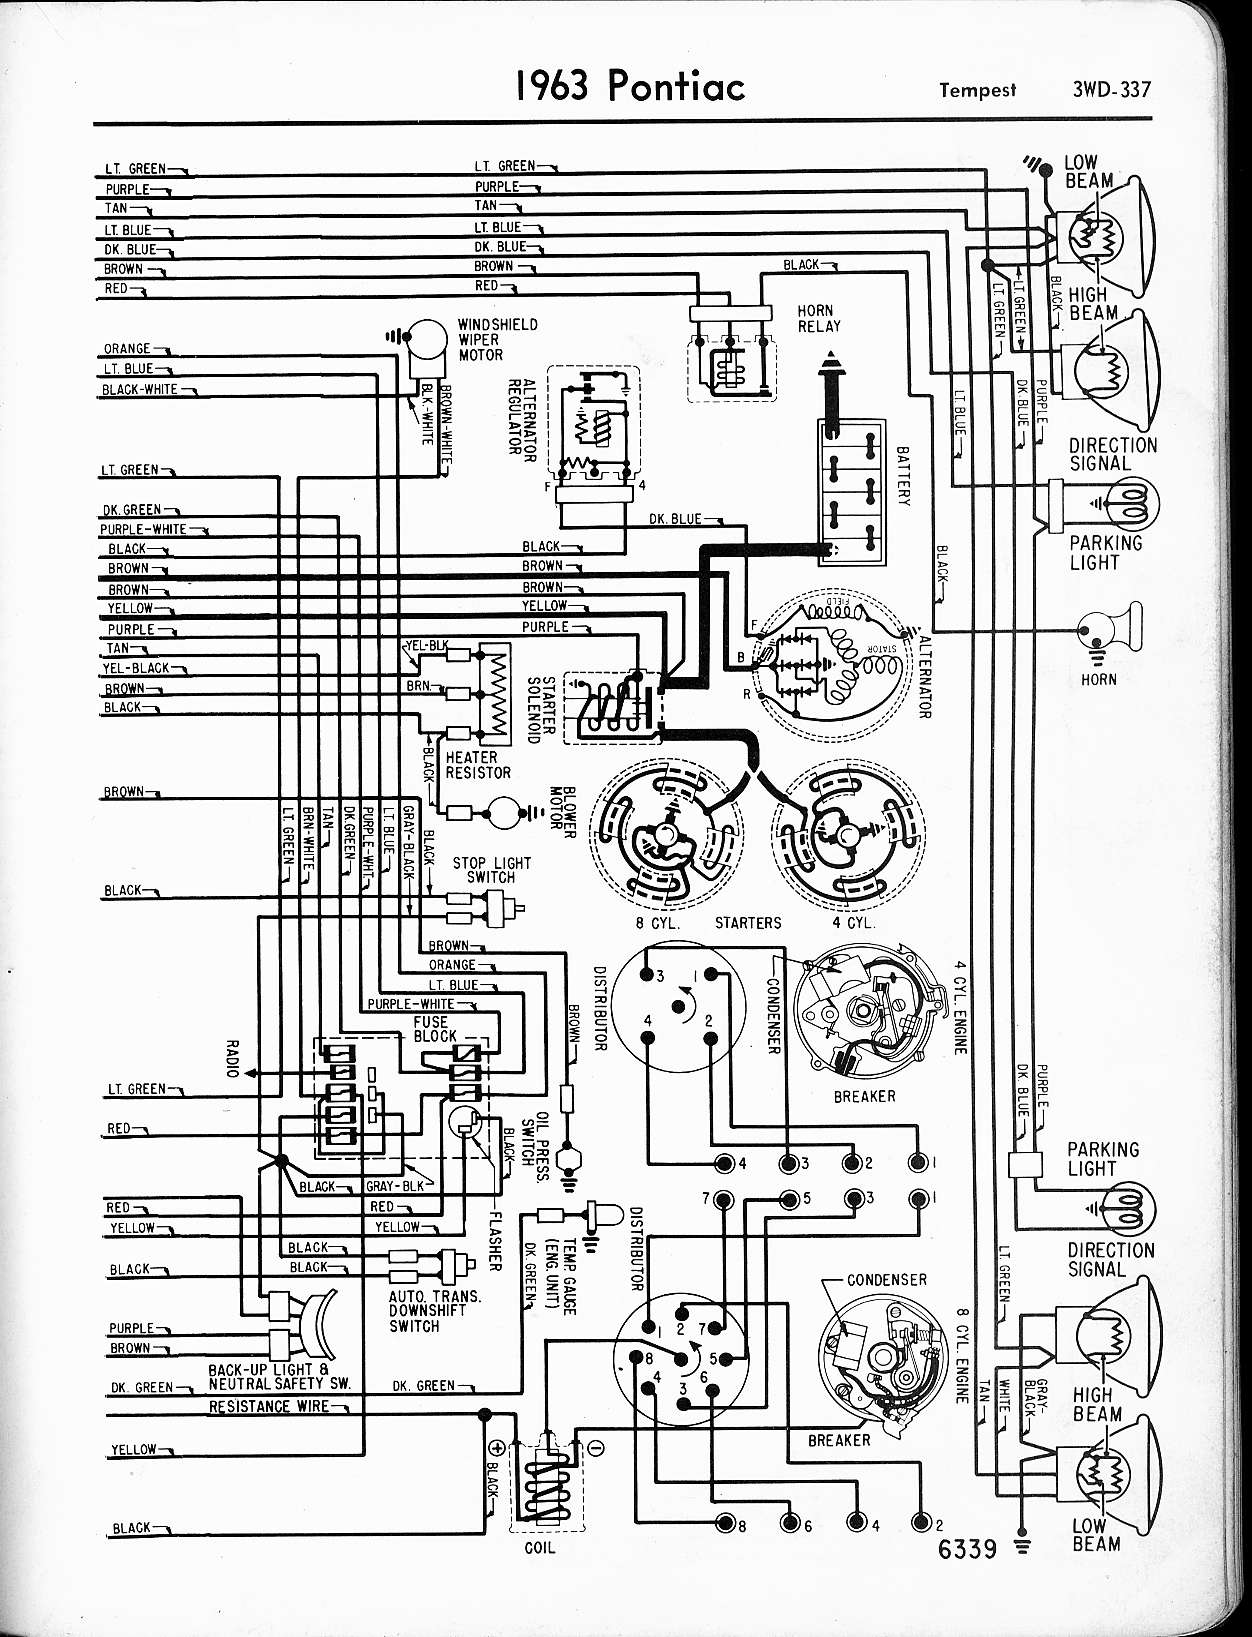 1970 gto fuse box 2 20 asyaunited de Where Are Frigidaire Dryer Model Number Located in the a Fuses Leq2152eeo 1970 gto fuse box wiring diagram rh 2 galeriehammer ch 1968 gto 1972 gto